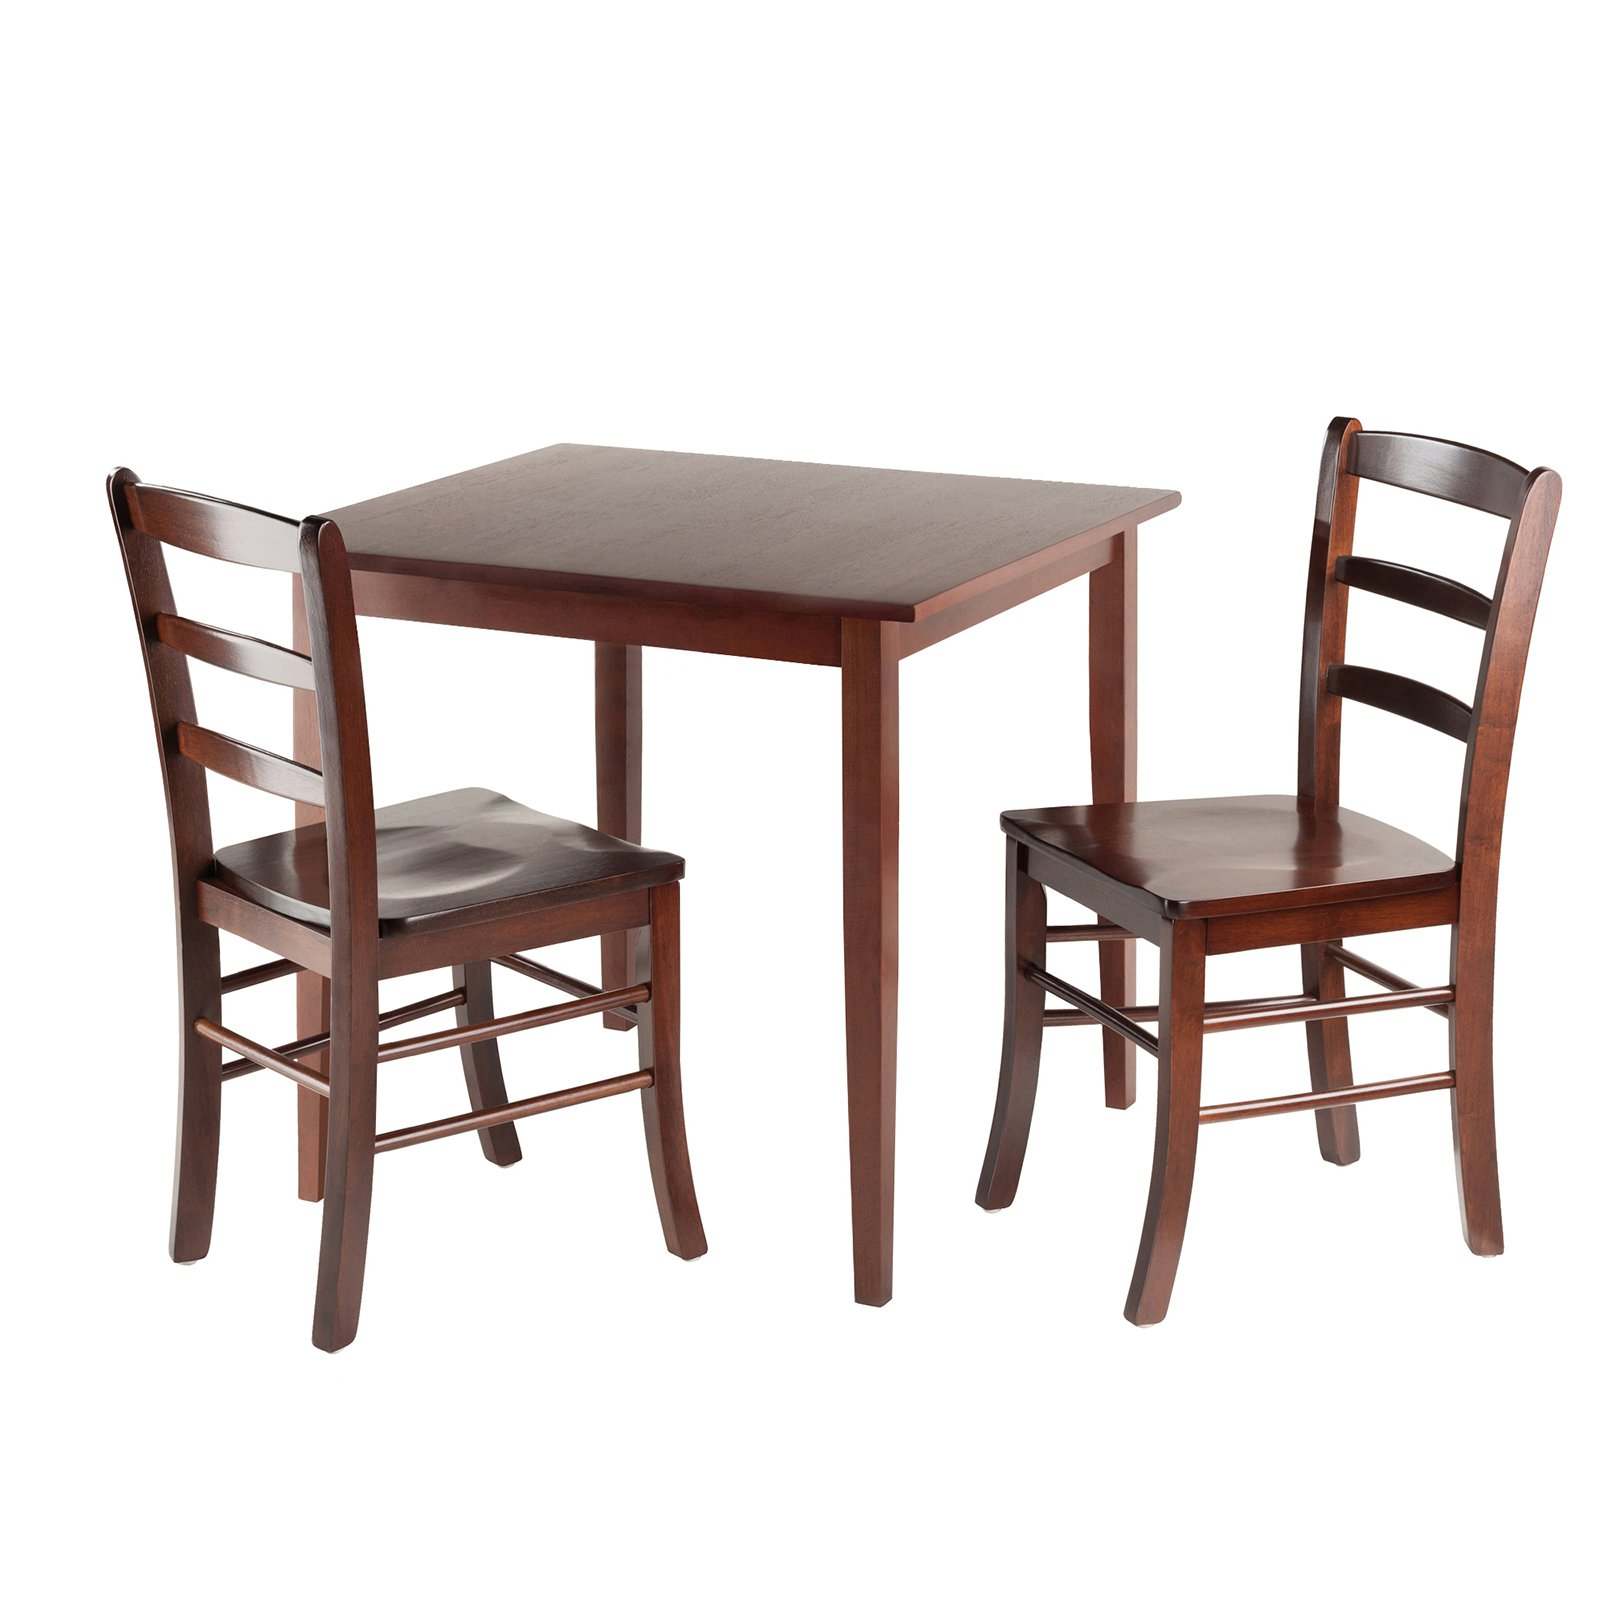 Winsome Groveland Square Dining Table With 2 Chairs 3 Piece Walmart Com Walmart Com